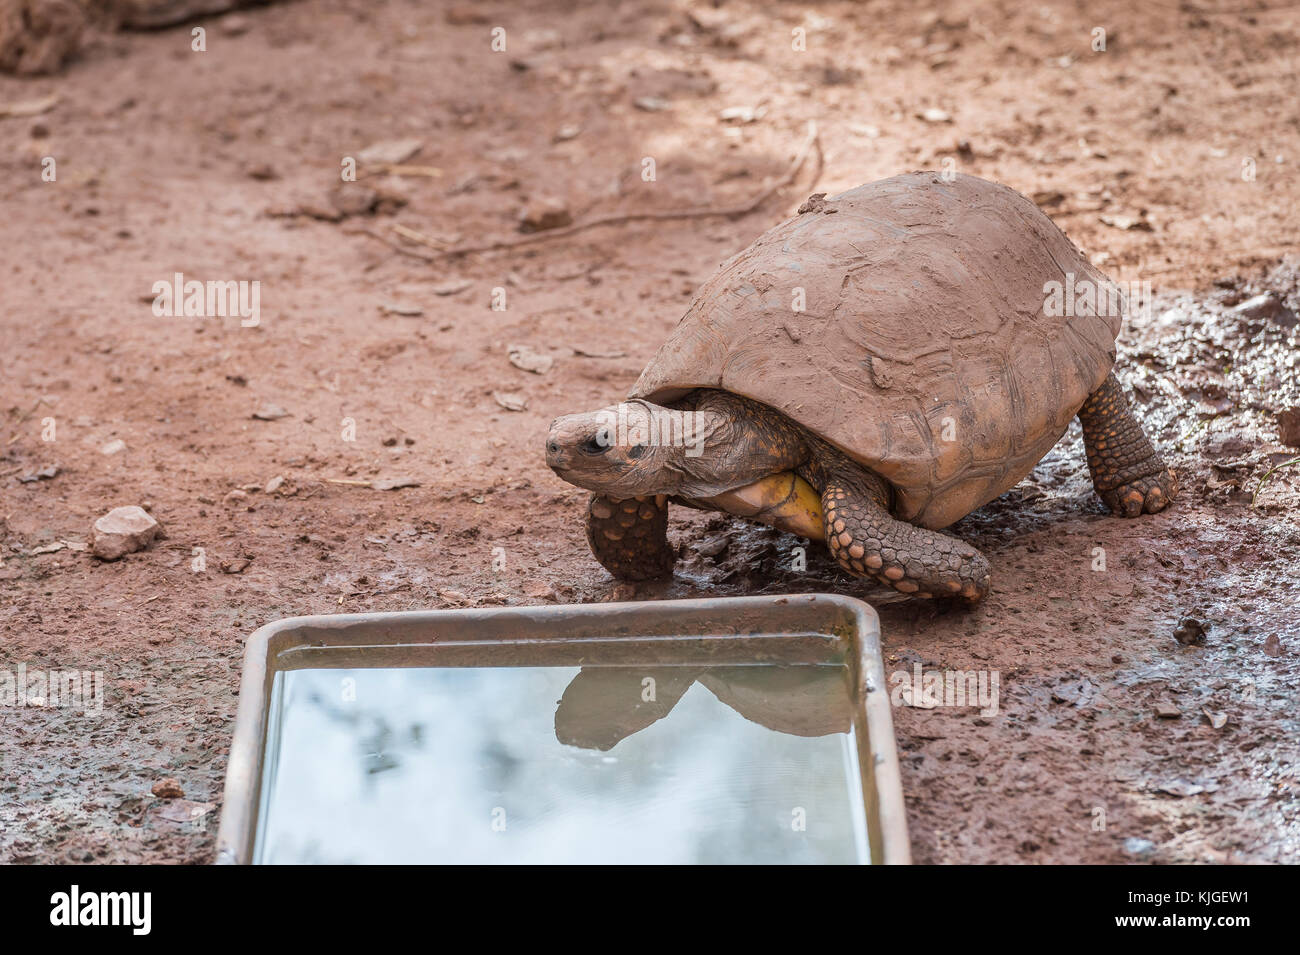 TORTUE GEANTE ASIATIQUE , Carnoules Var France - Stock Image